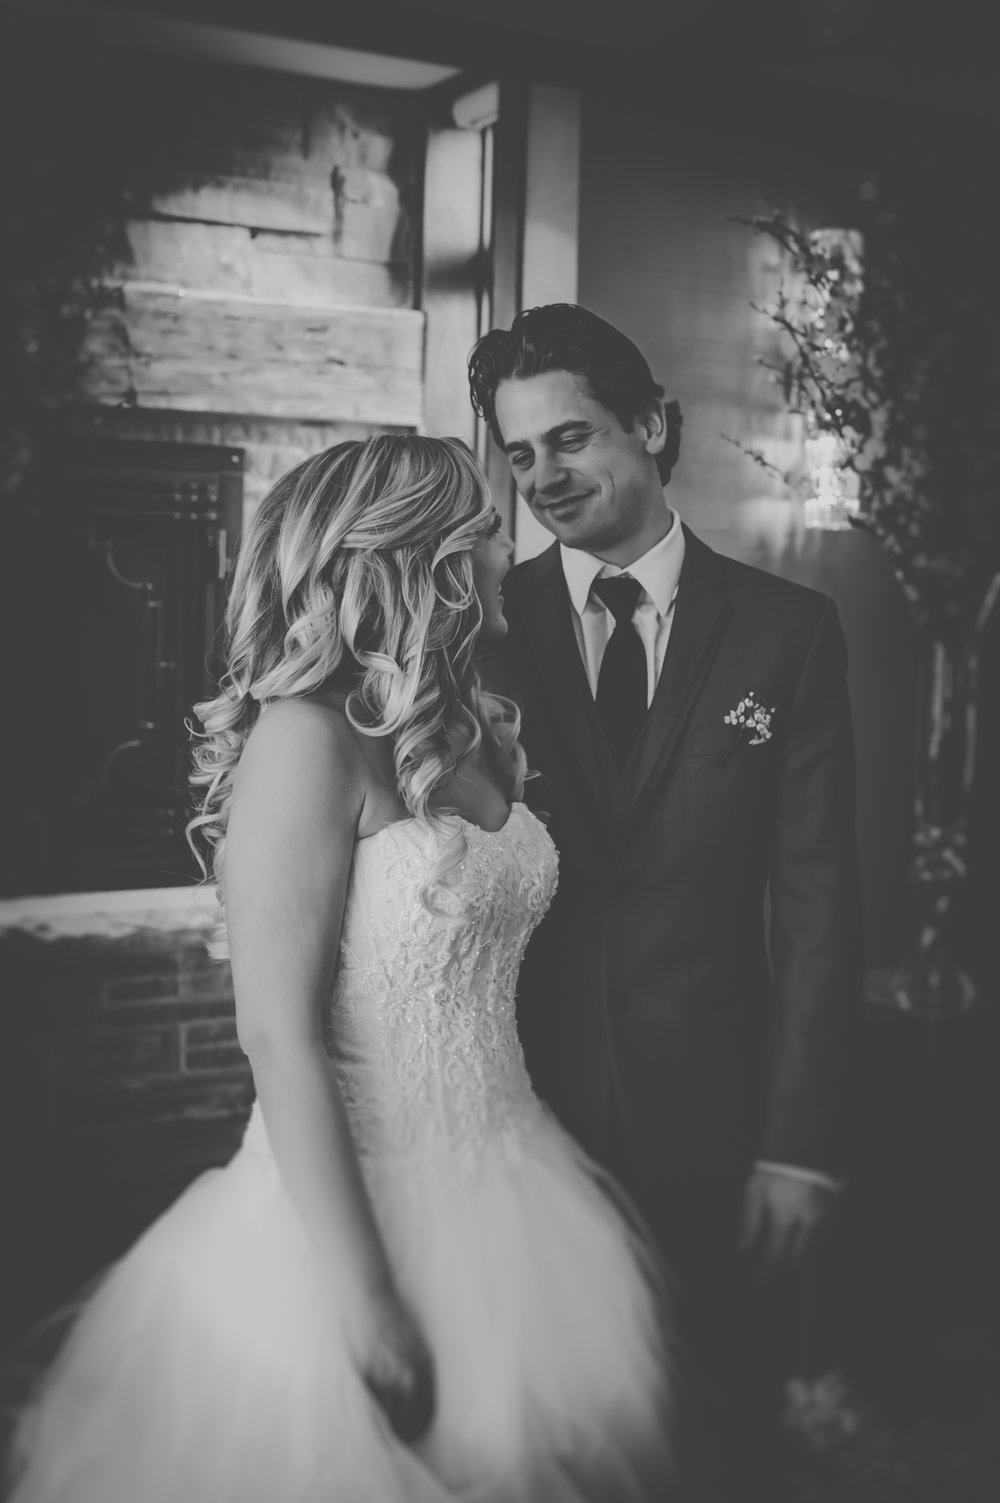 wedding, wedding photographer,love,Burlington wedding photographer